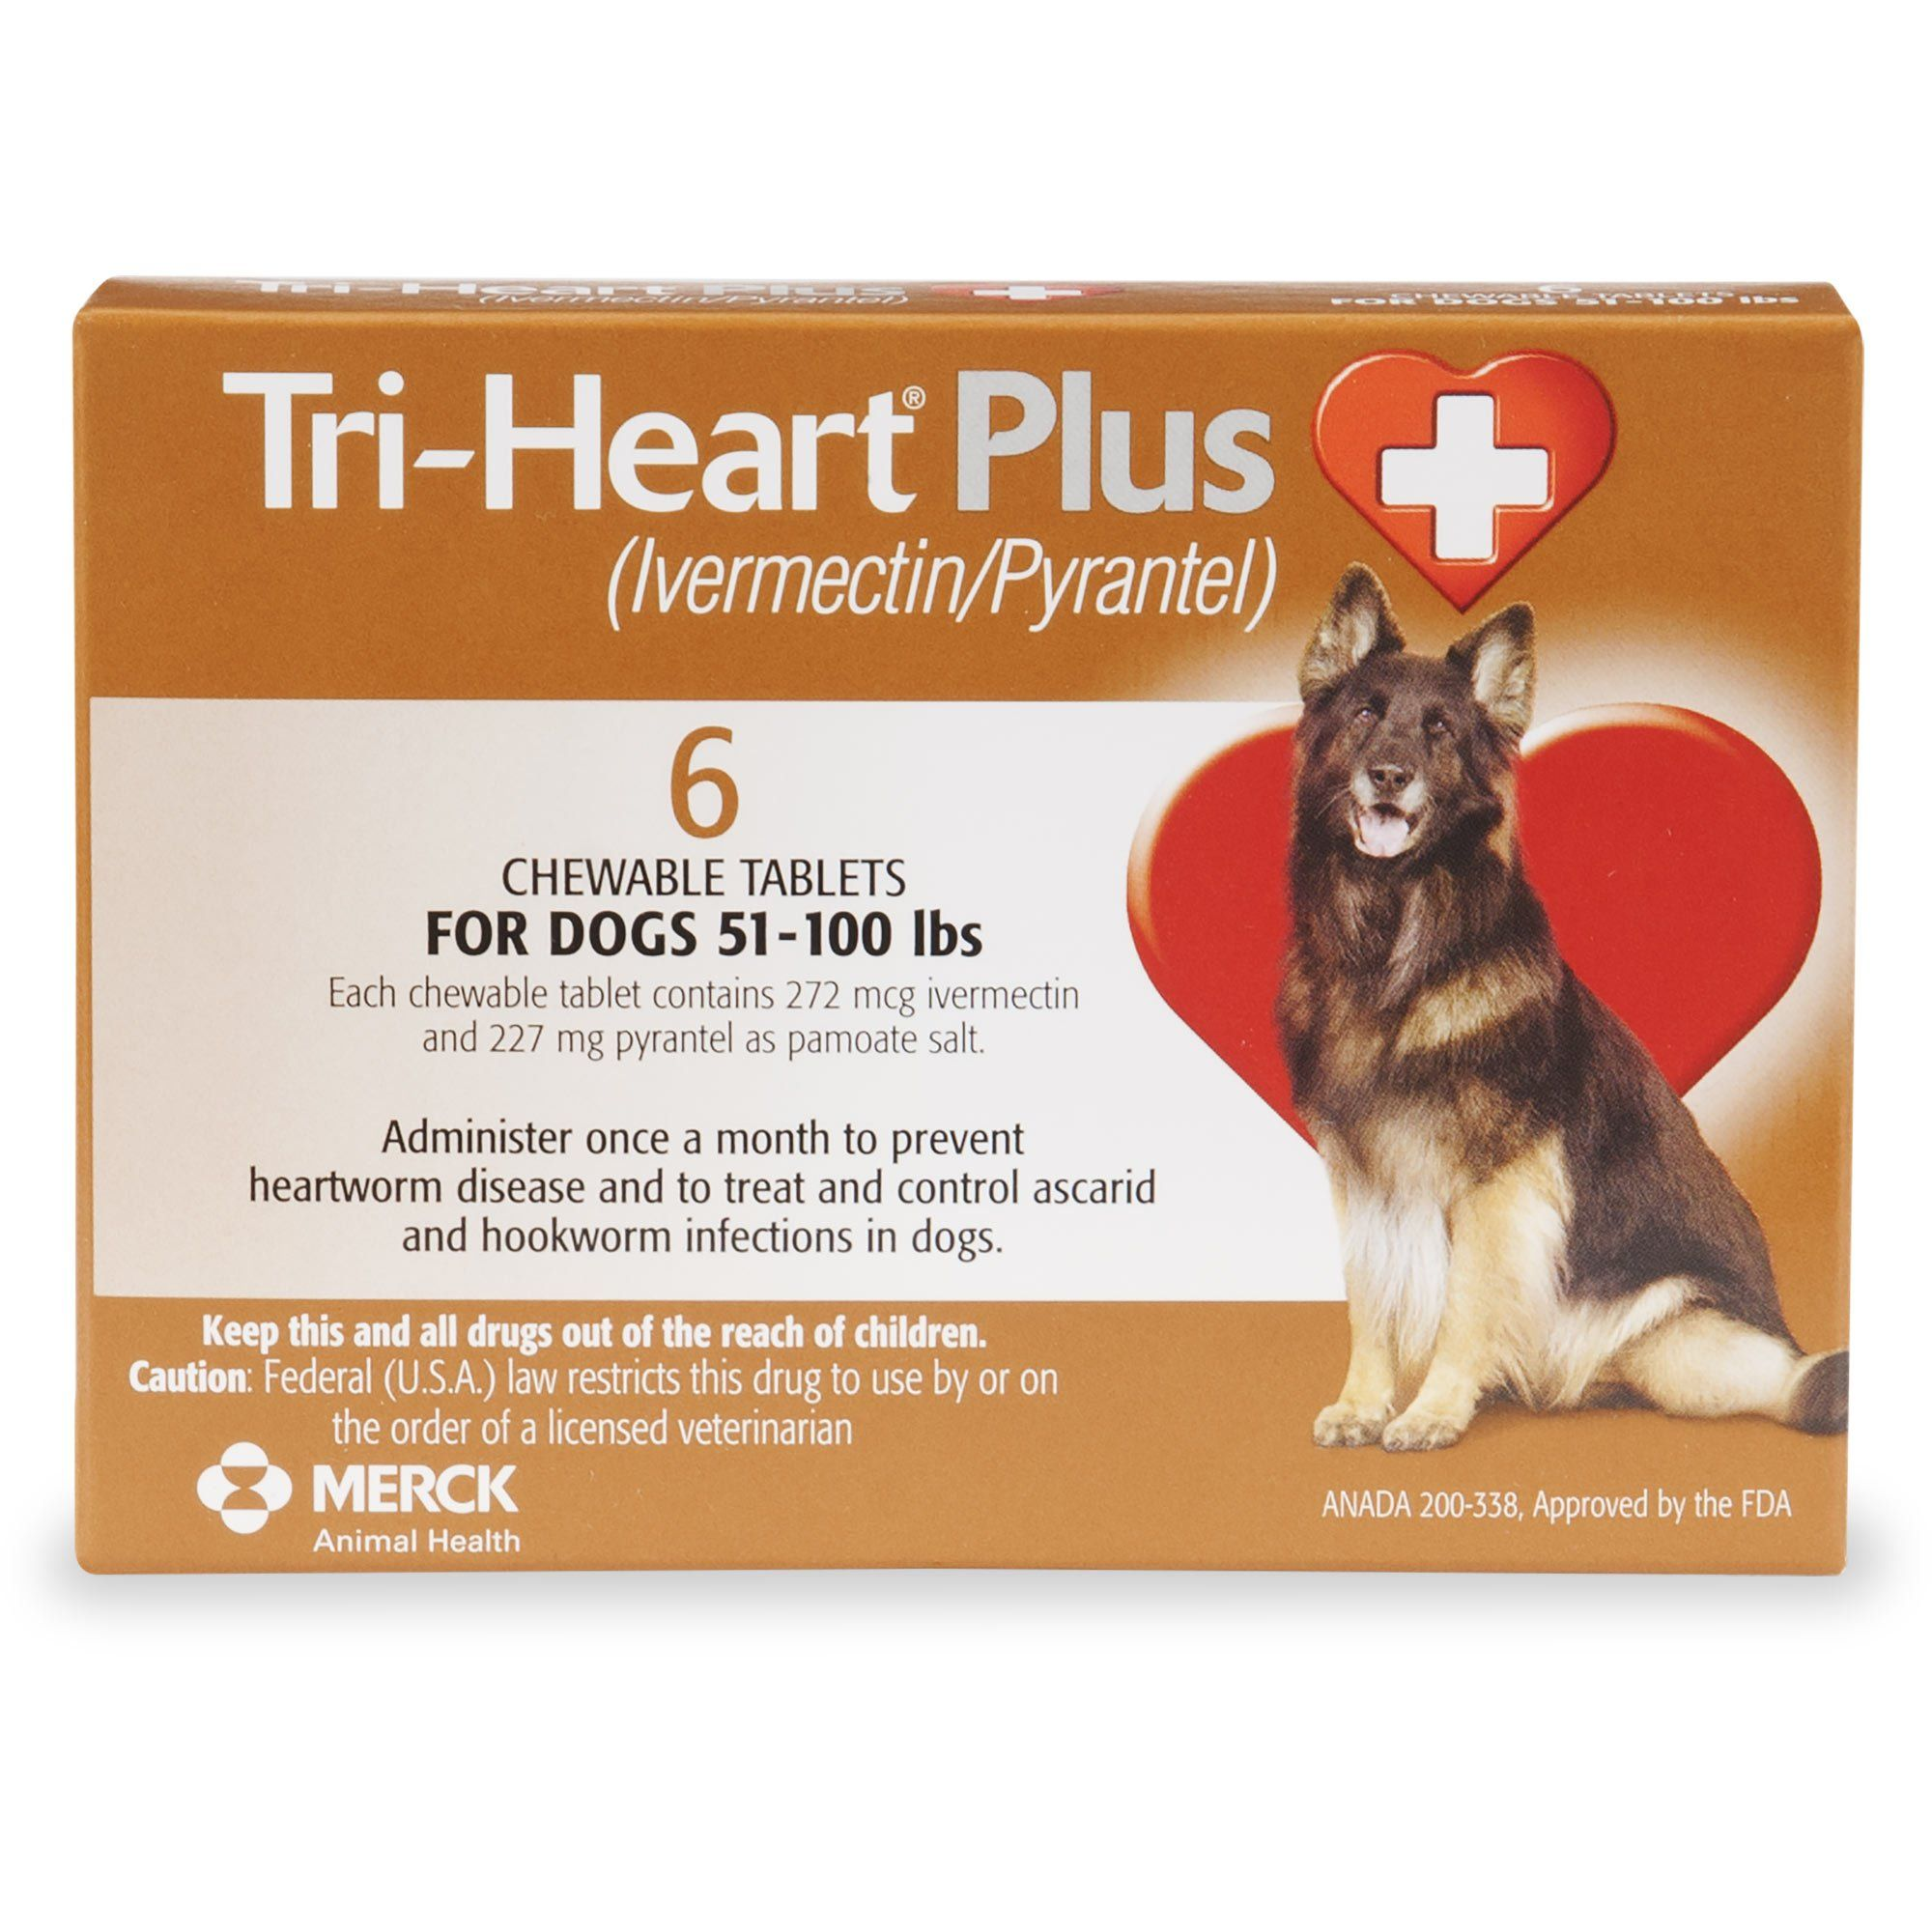 TriHeart Plus Chewable Tablets for Dogs 51 to 100 lbs., 6